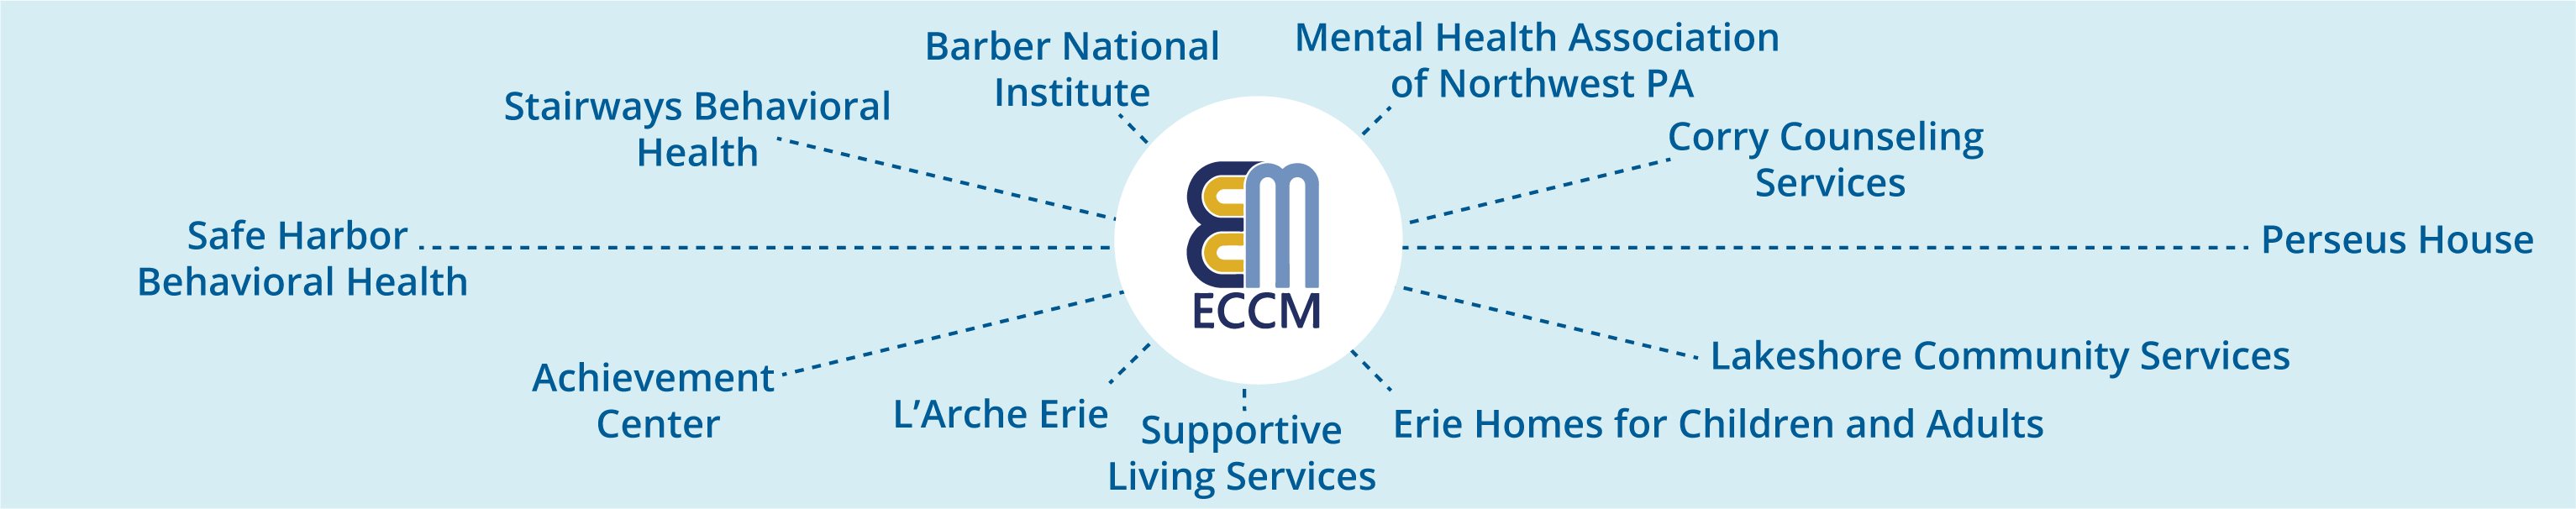 Mental Health Services NWPA - ...